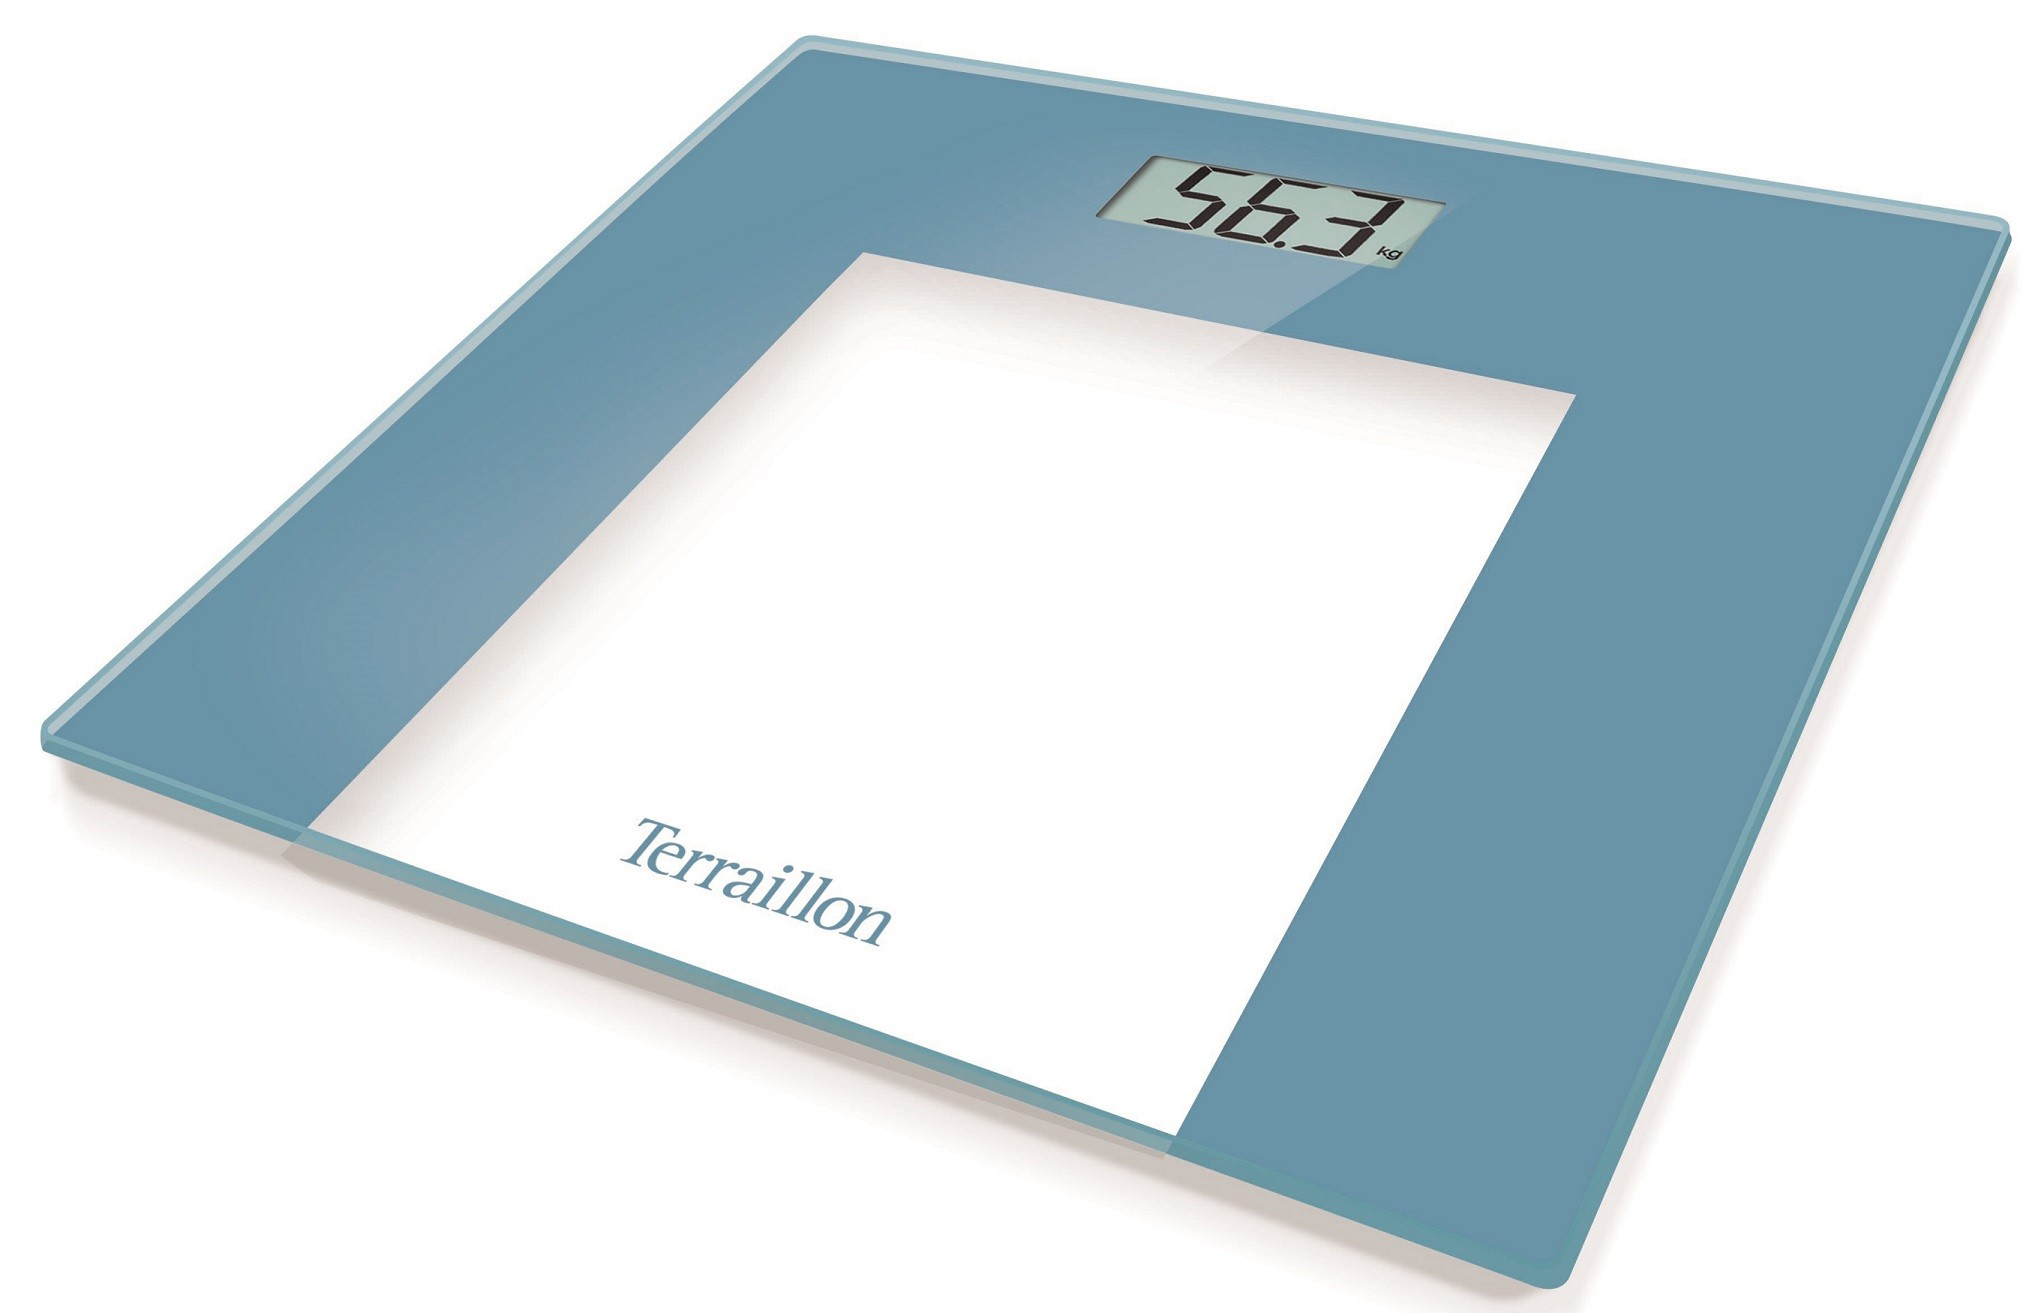 TERRAILLON - TP 1000 GLASS BLEU